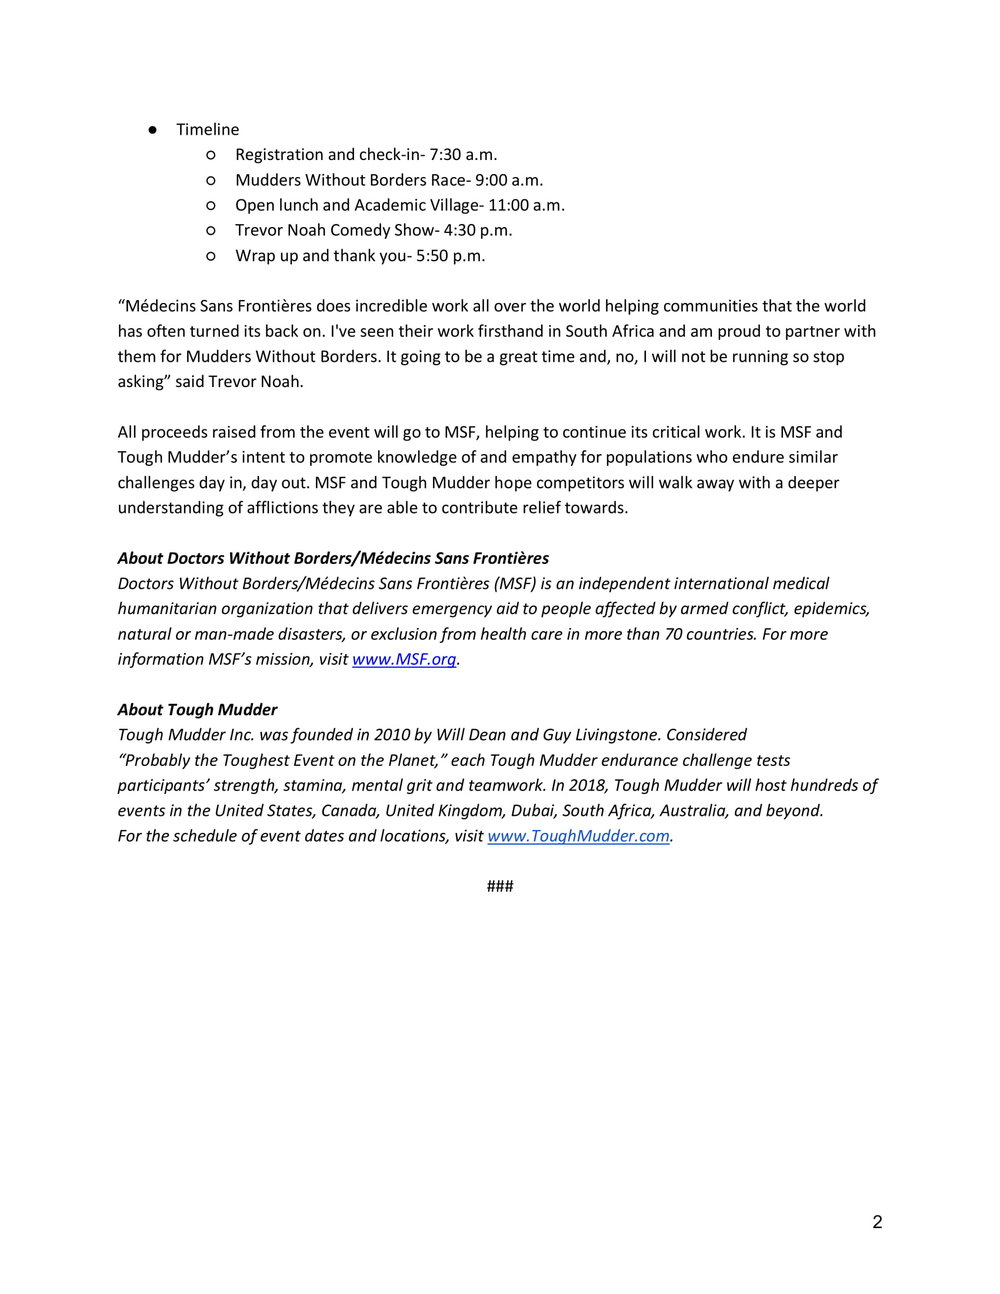 Mudders Without Borders Press Release Page 2